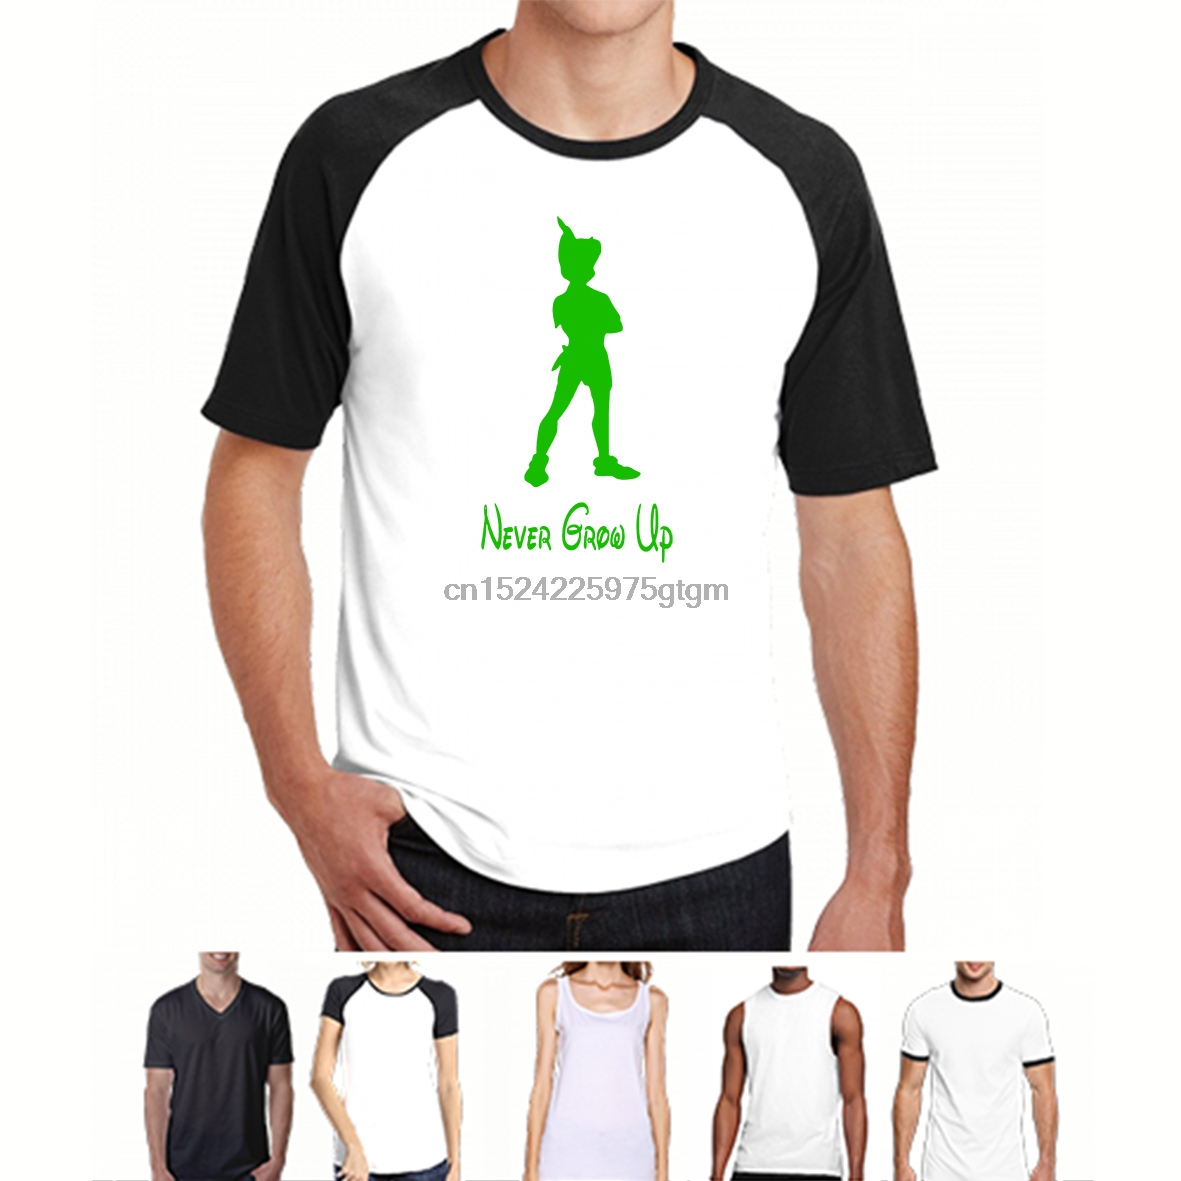 100% Cotton O-neck Custom Printed Men T Shirt Peter Pan Never Grow Up Women T-shirt.webp Aromatic Character And Agreeable Taste